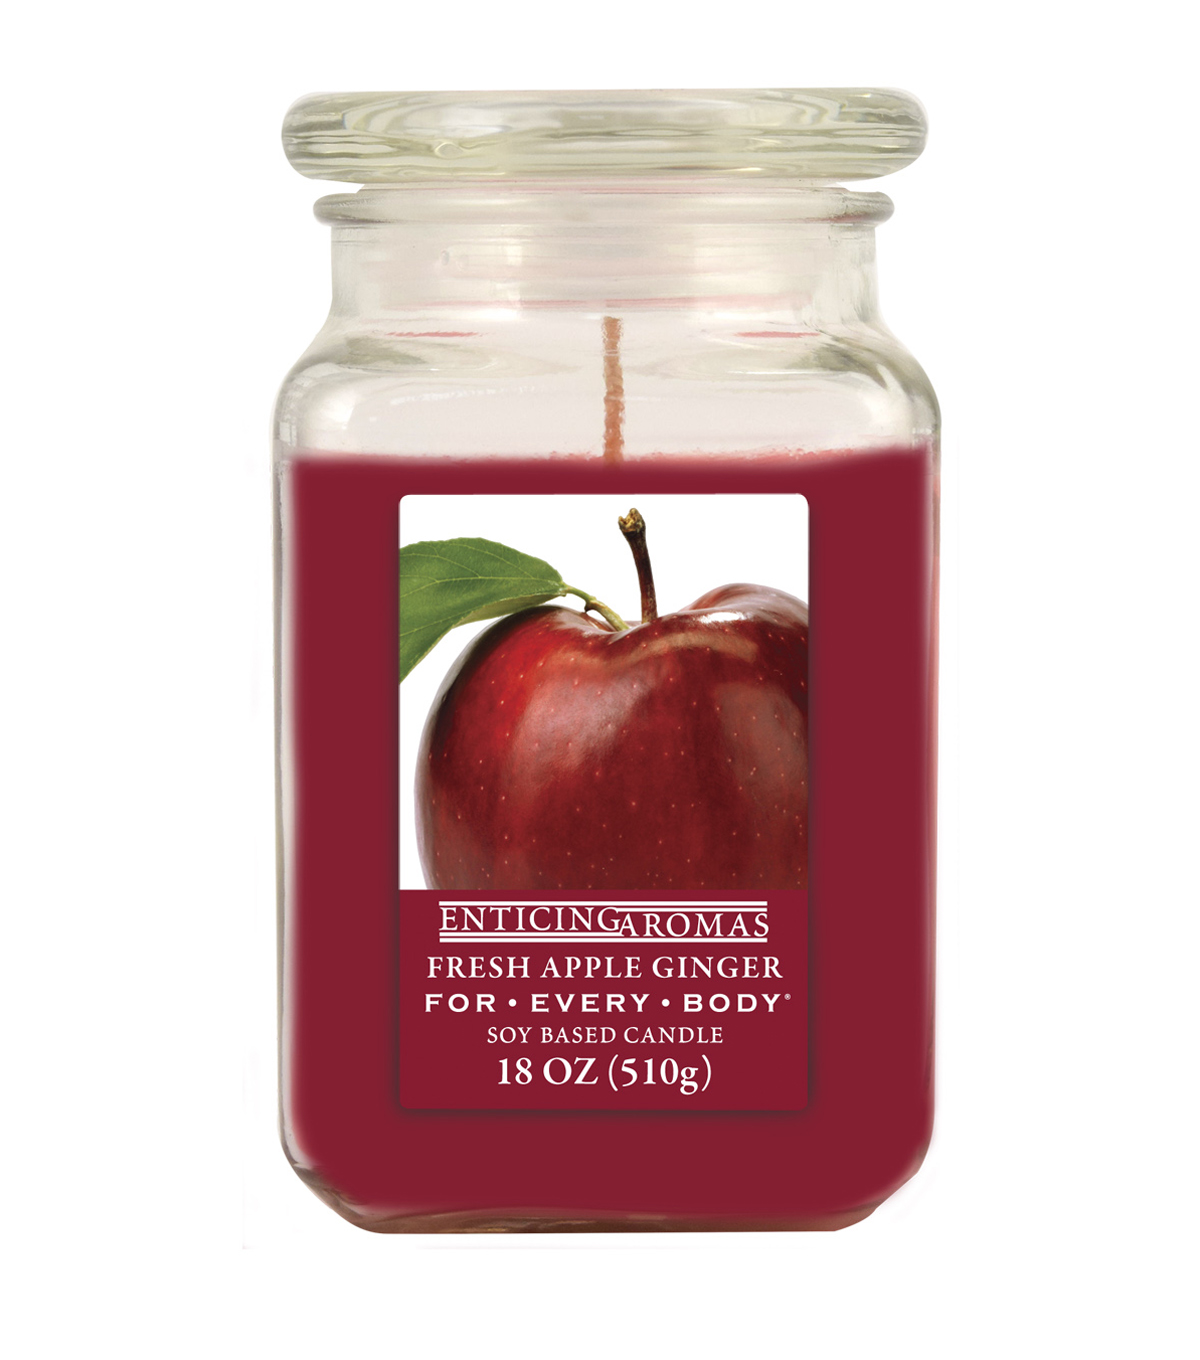 18oz Enticing Aromas Apple Ginger